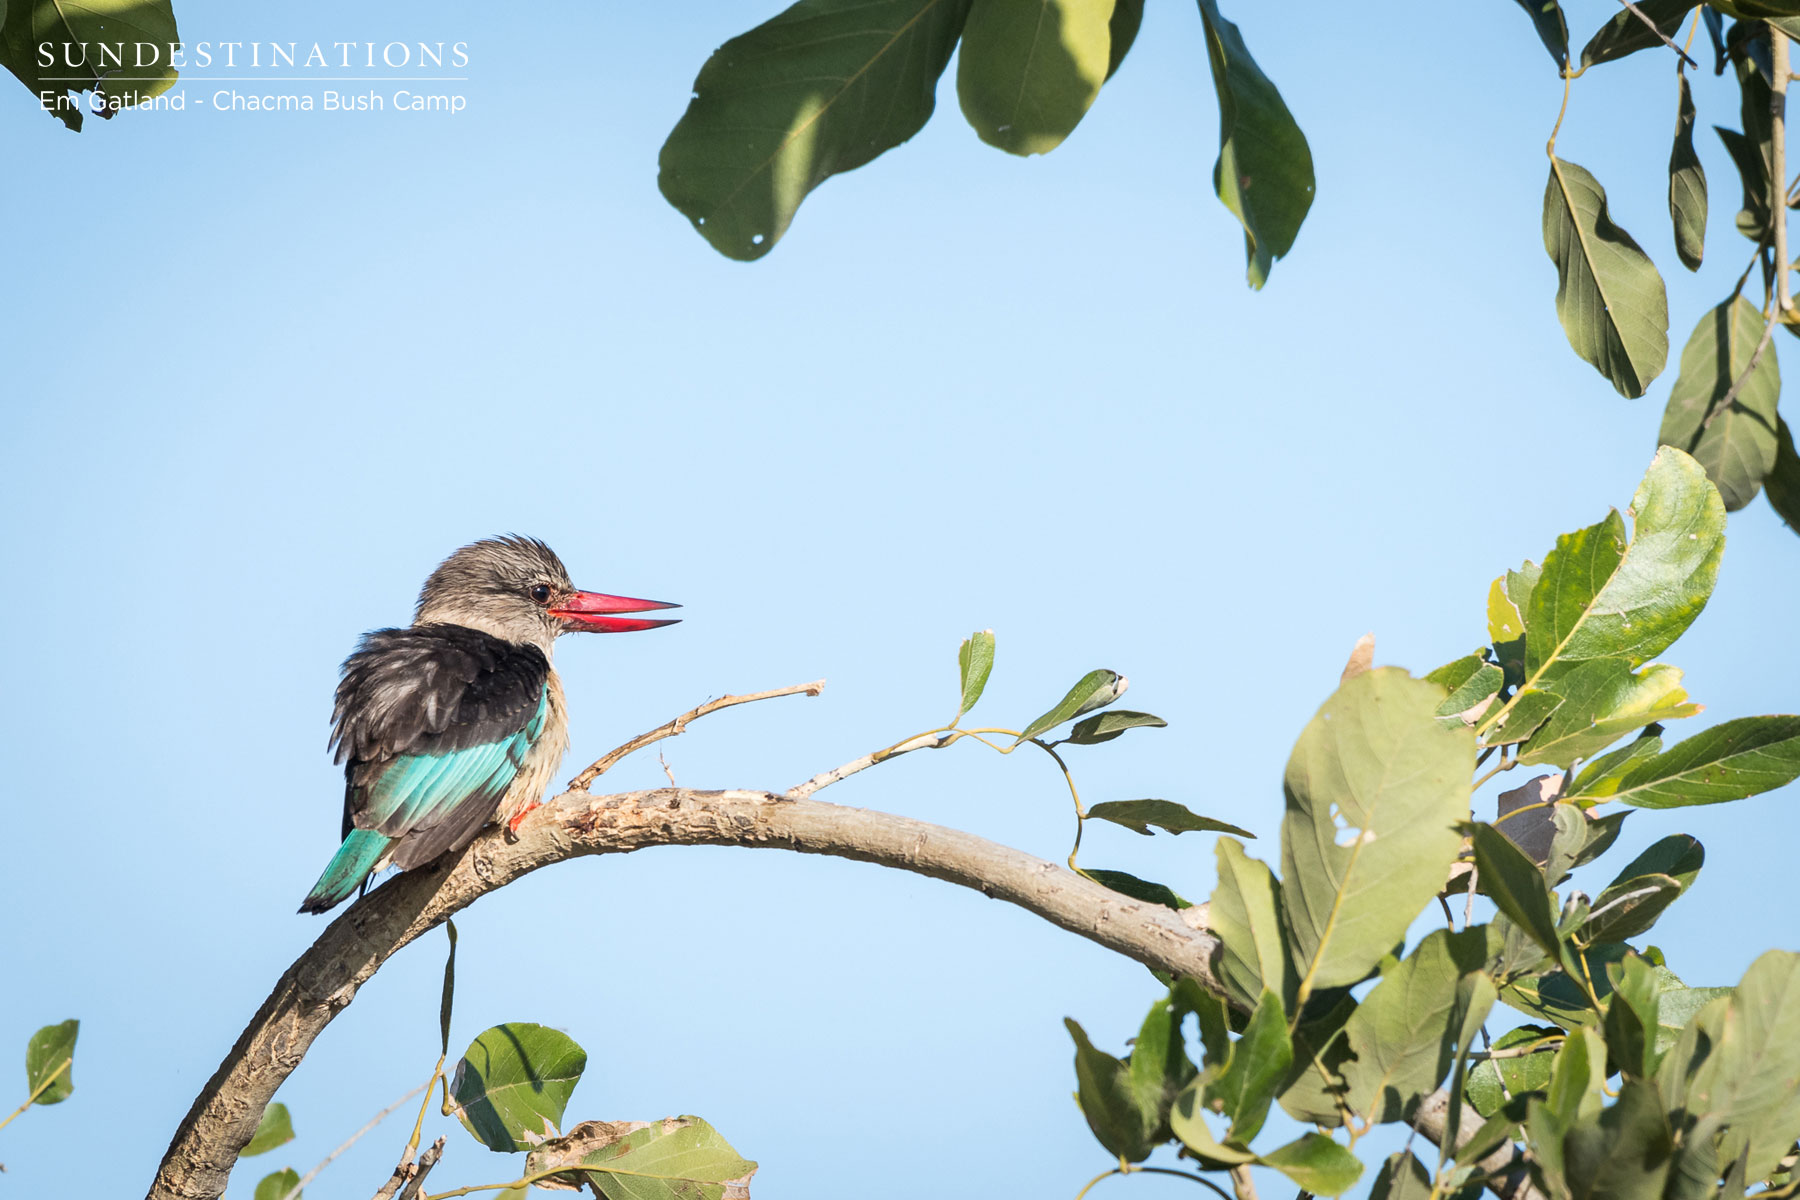 Photographs of Birds Spotted at Chacma Bush Camp